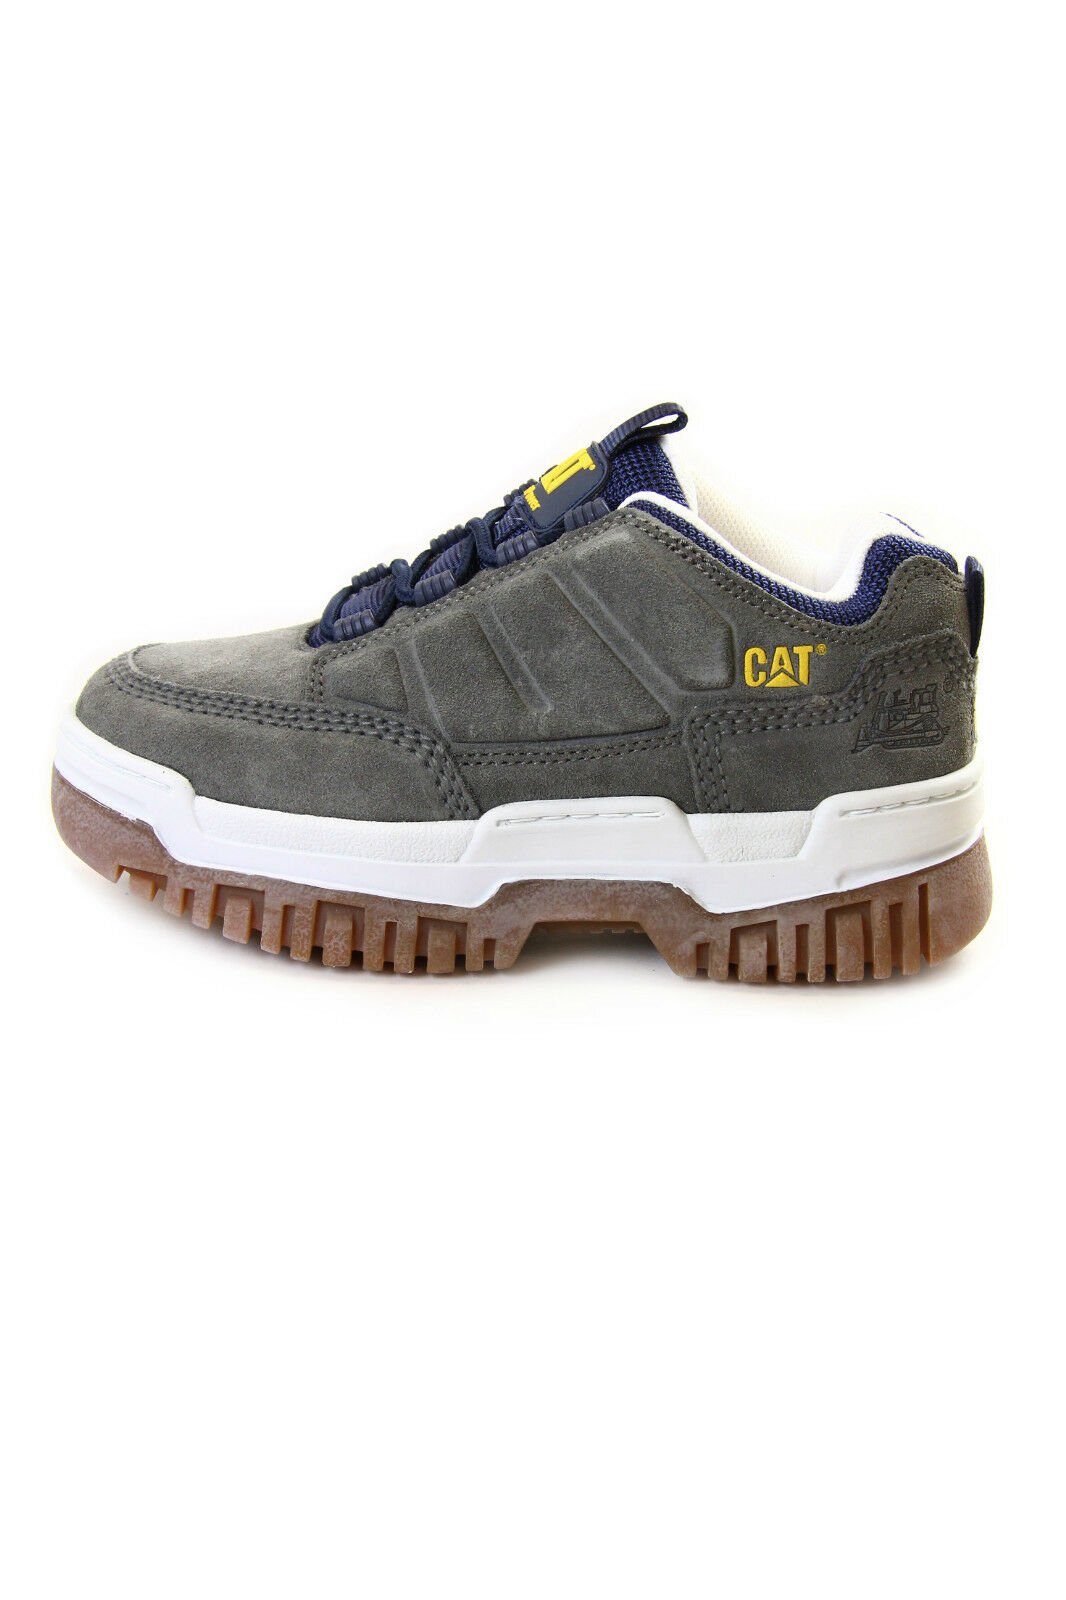 Caterpillar Riser Suede Sneakers Black, Grey, Light Grey and Charcoal